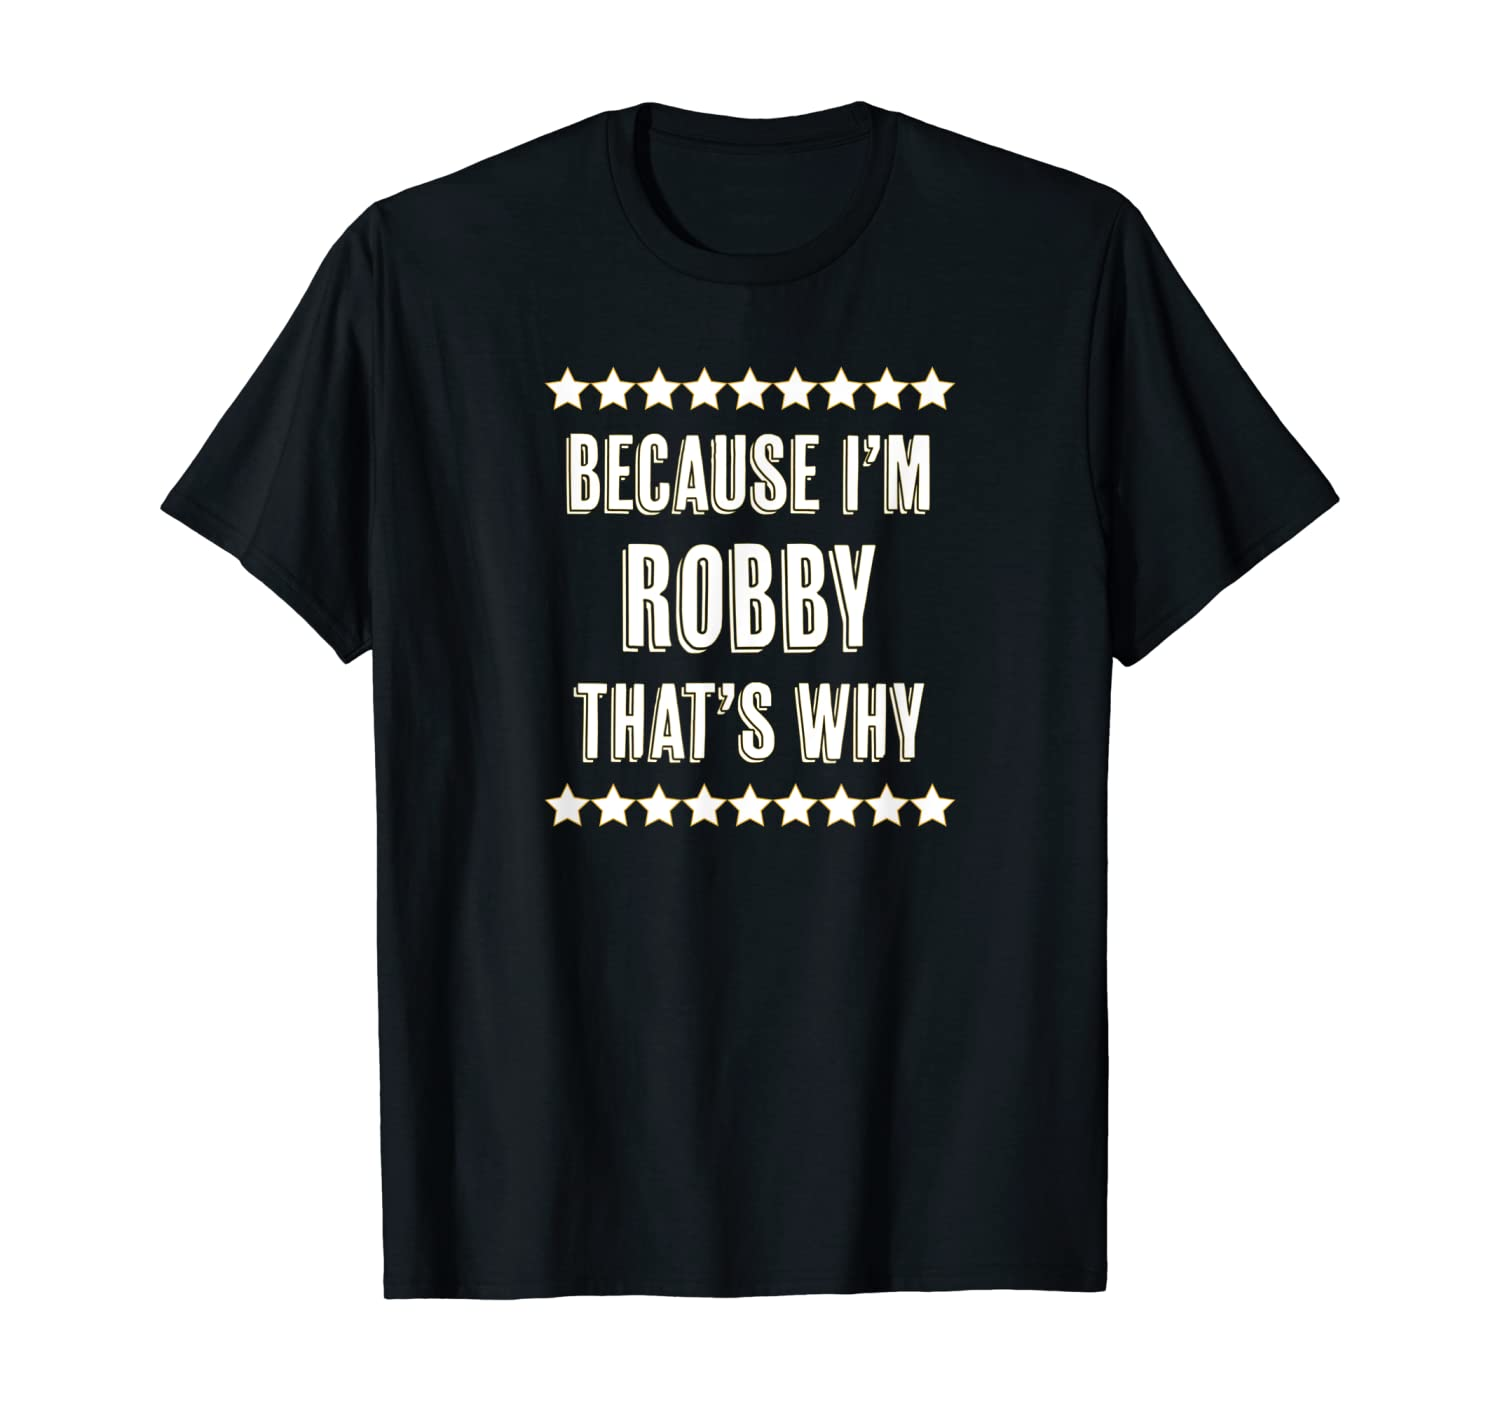 Because I'm - ROBBY - That's Why | Funny Name Gift - T-Shirt